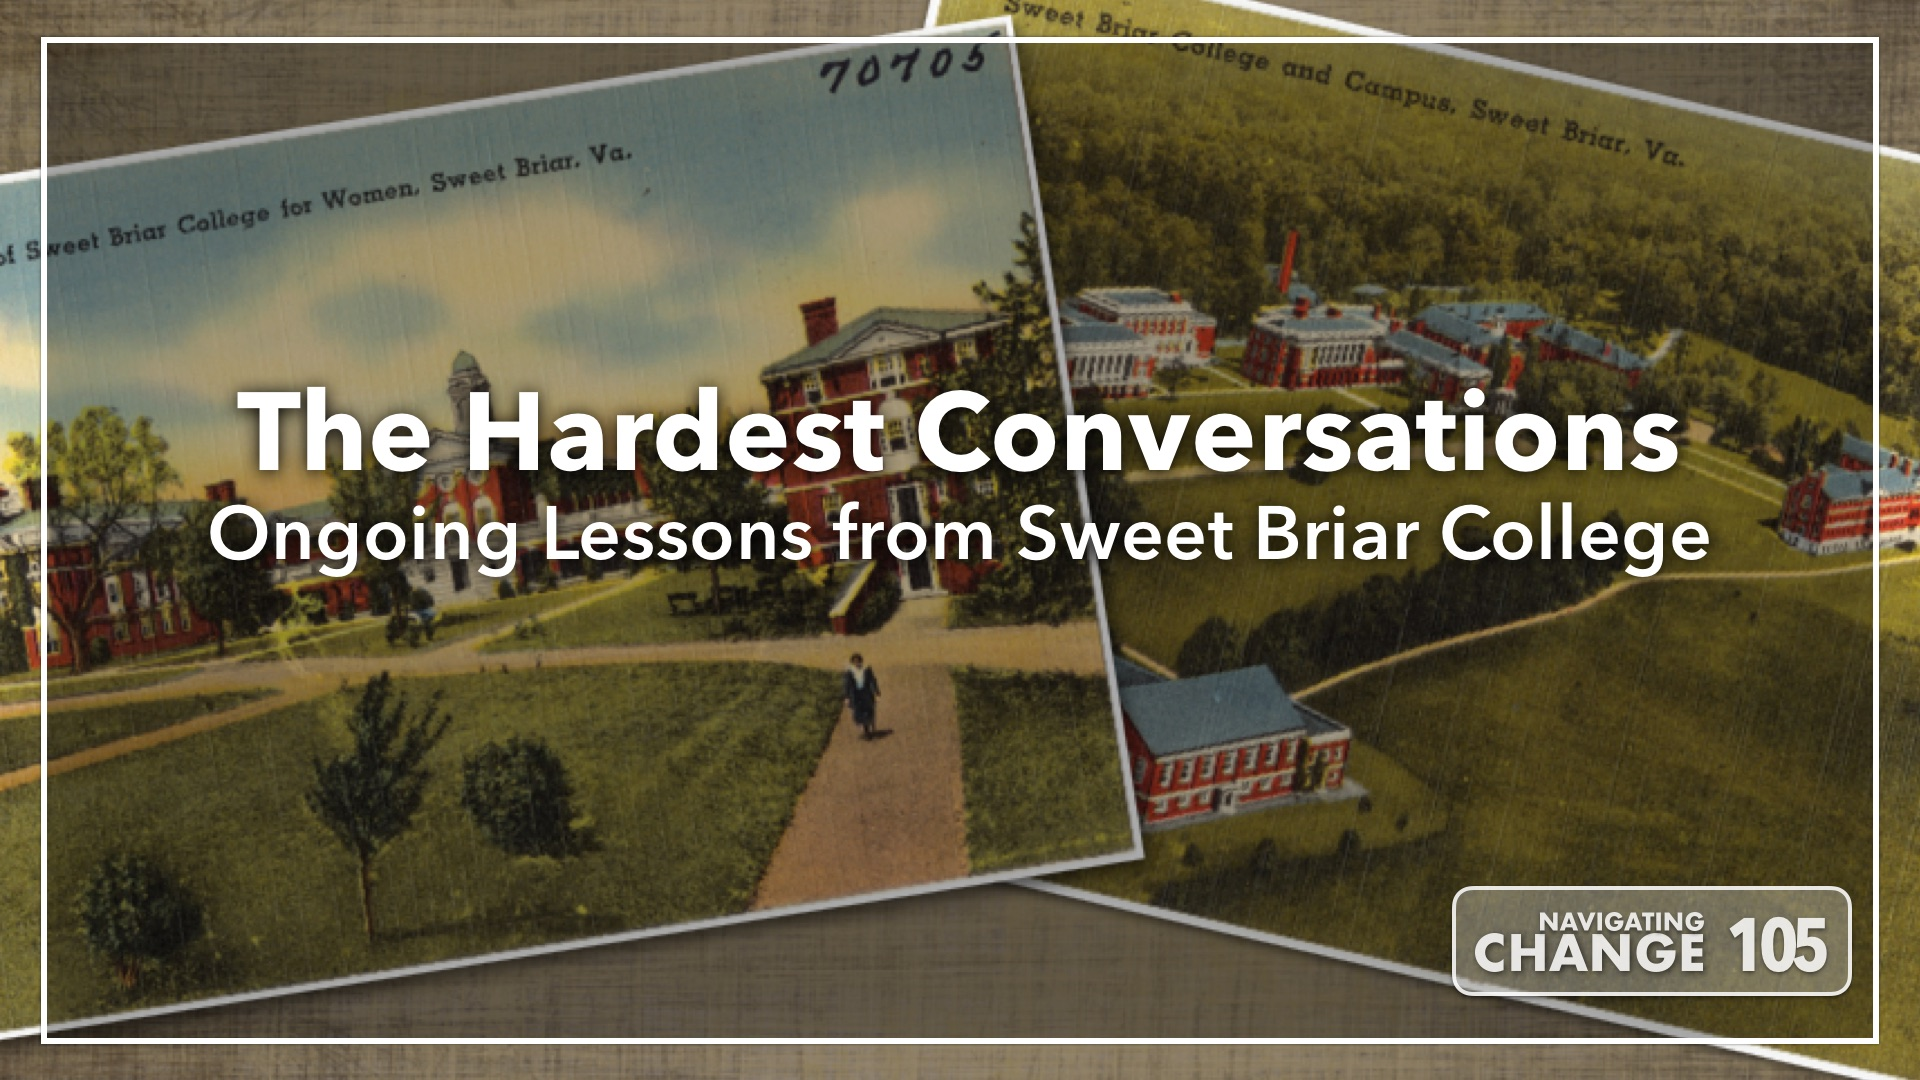 Listen to Lessons from Sweet Briar College on Navigating Change The Education Podcast